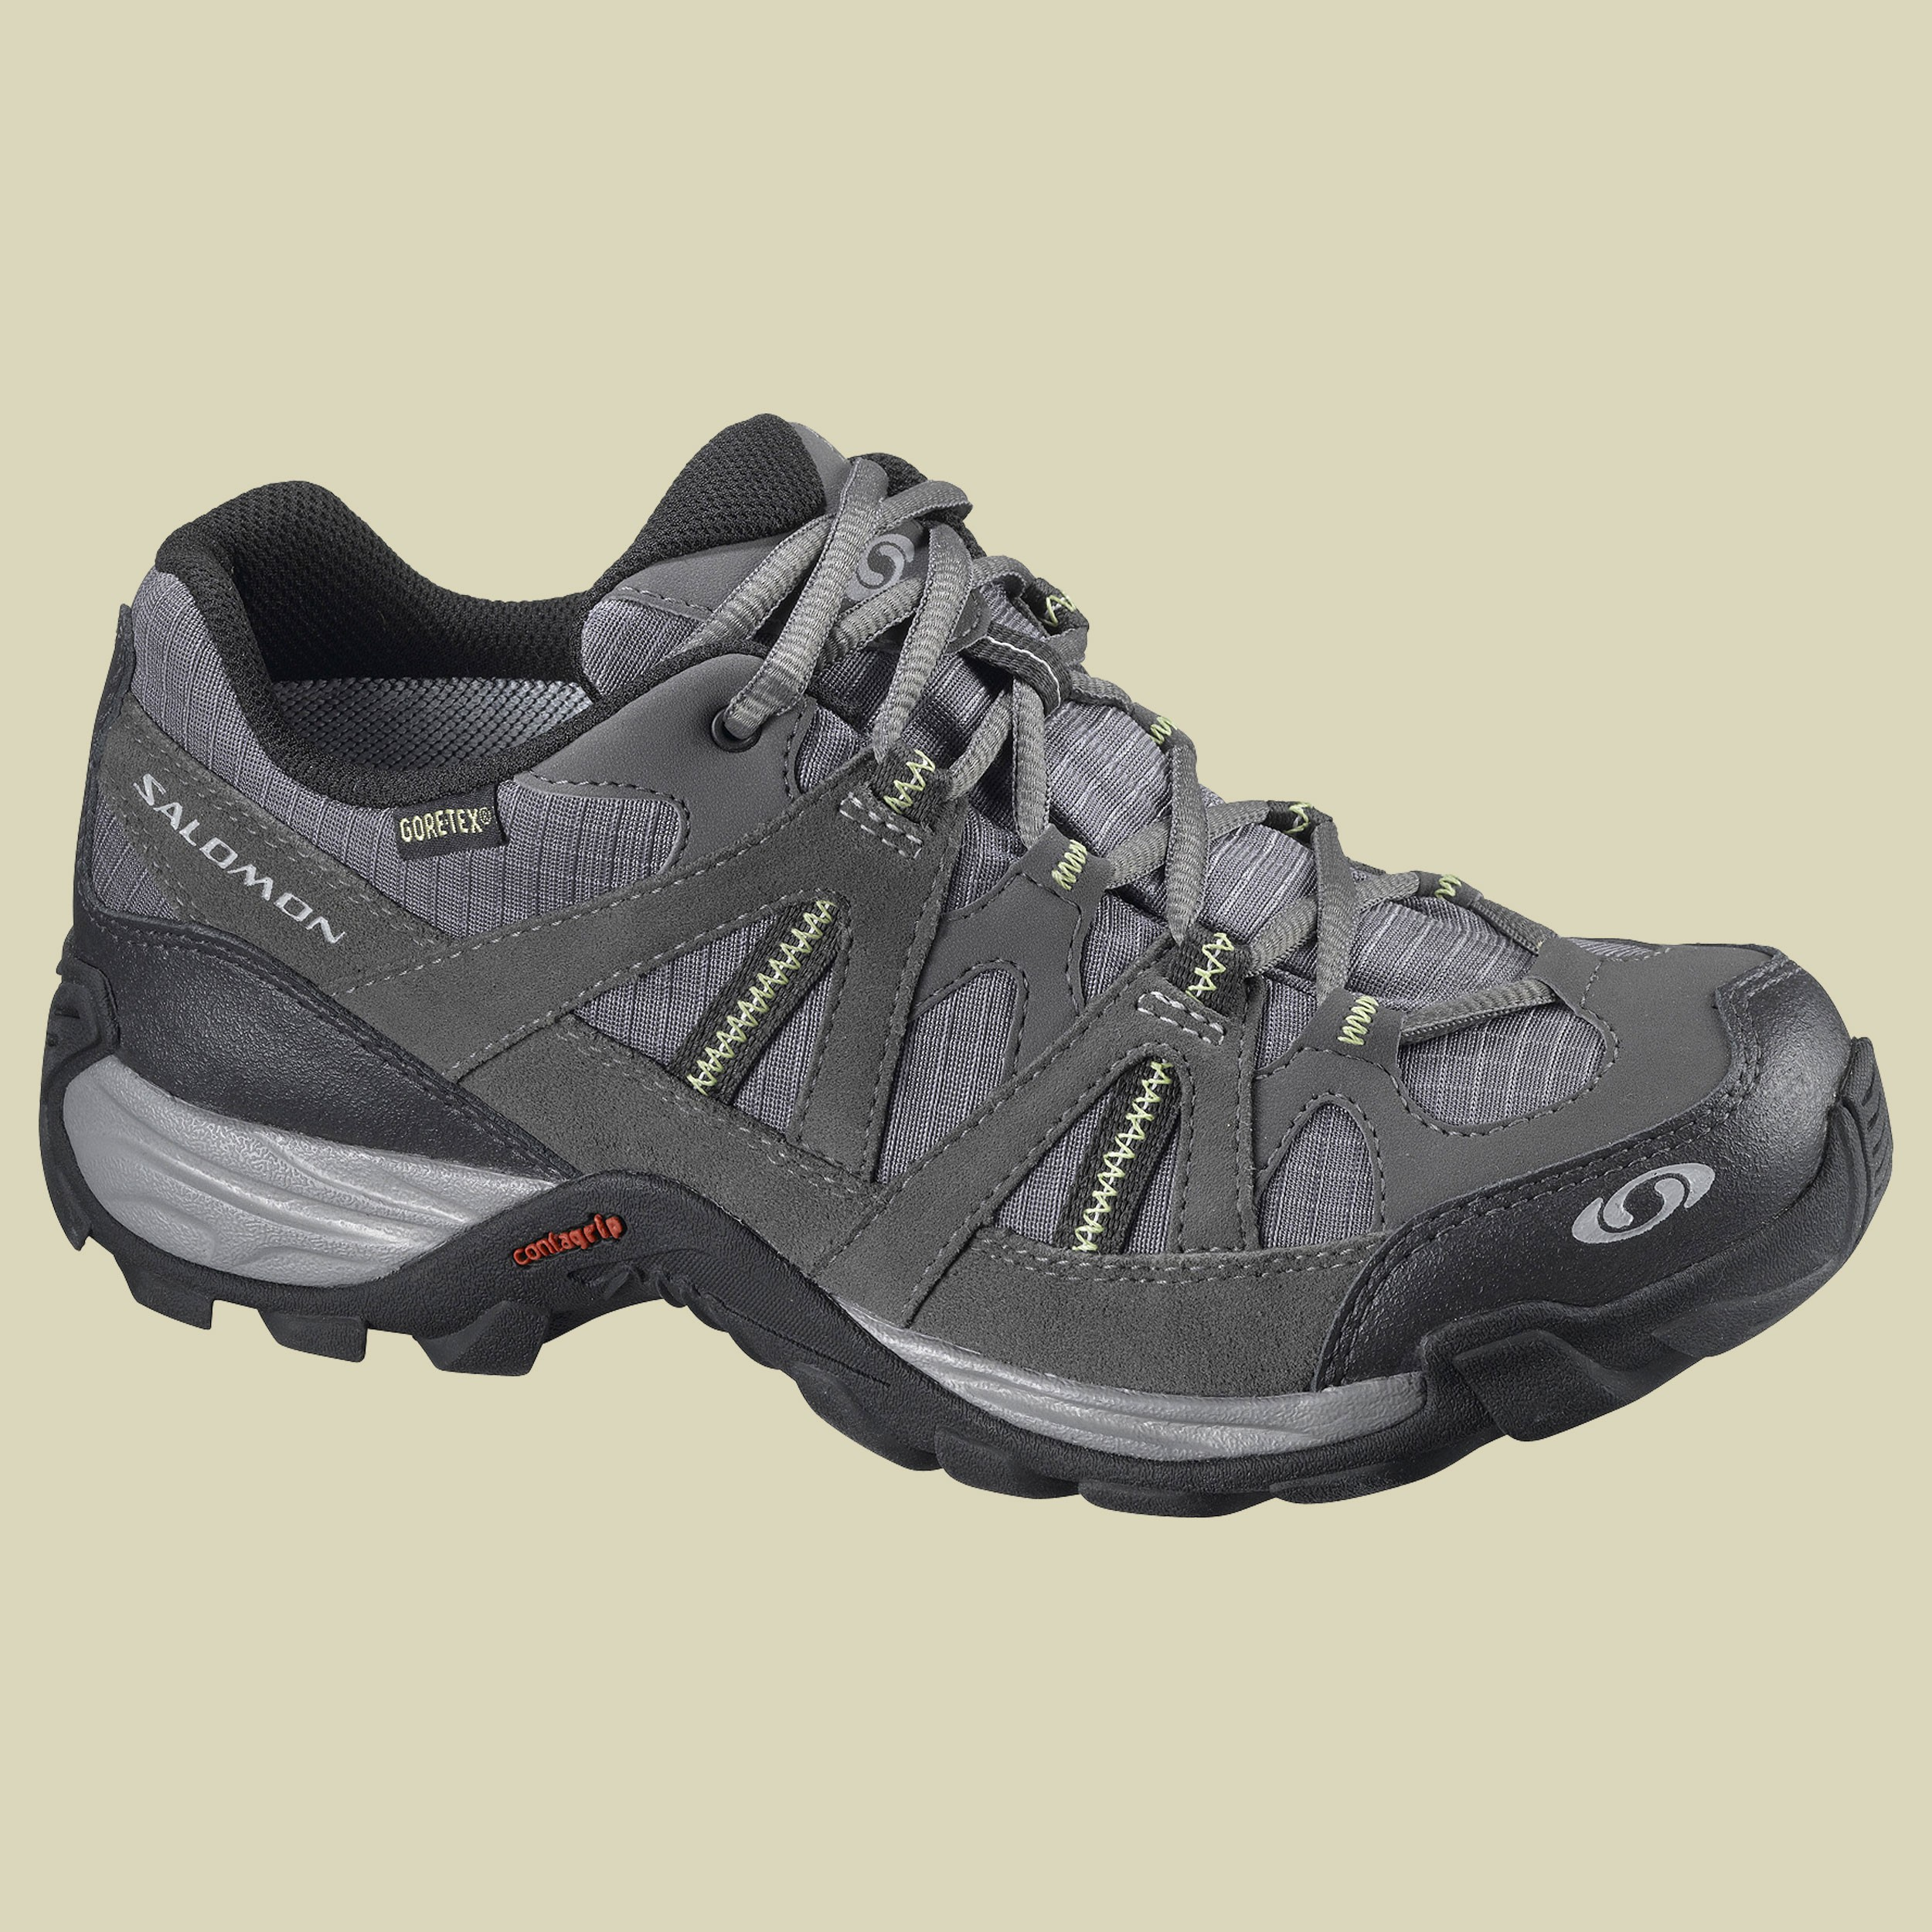 Exode Low GTX Women